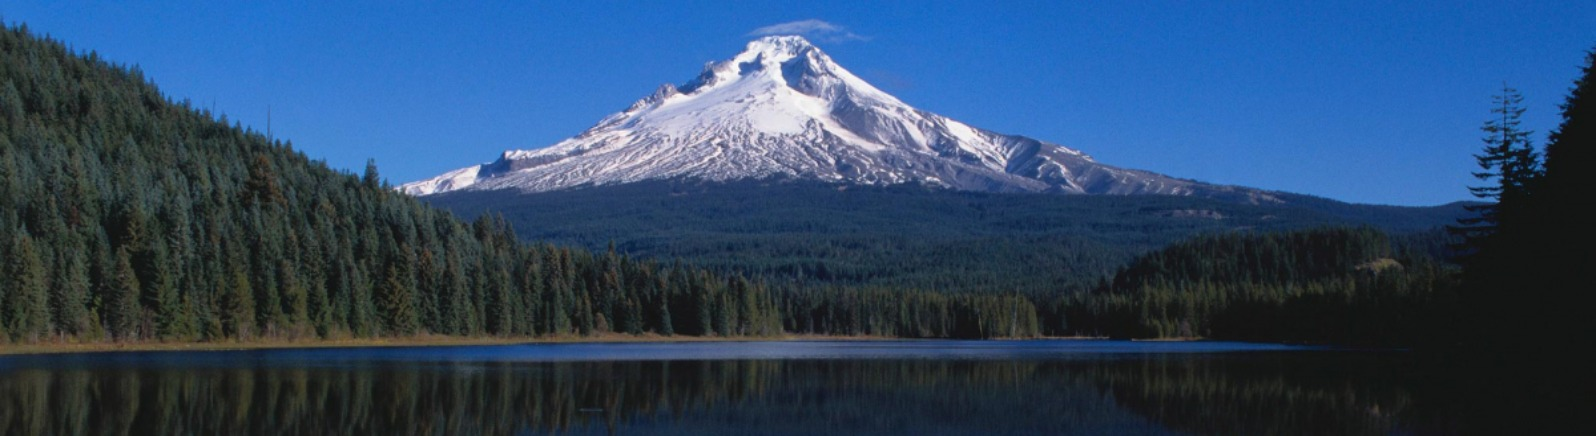 Trillium Lake with reflection of Mt. Hood